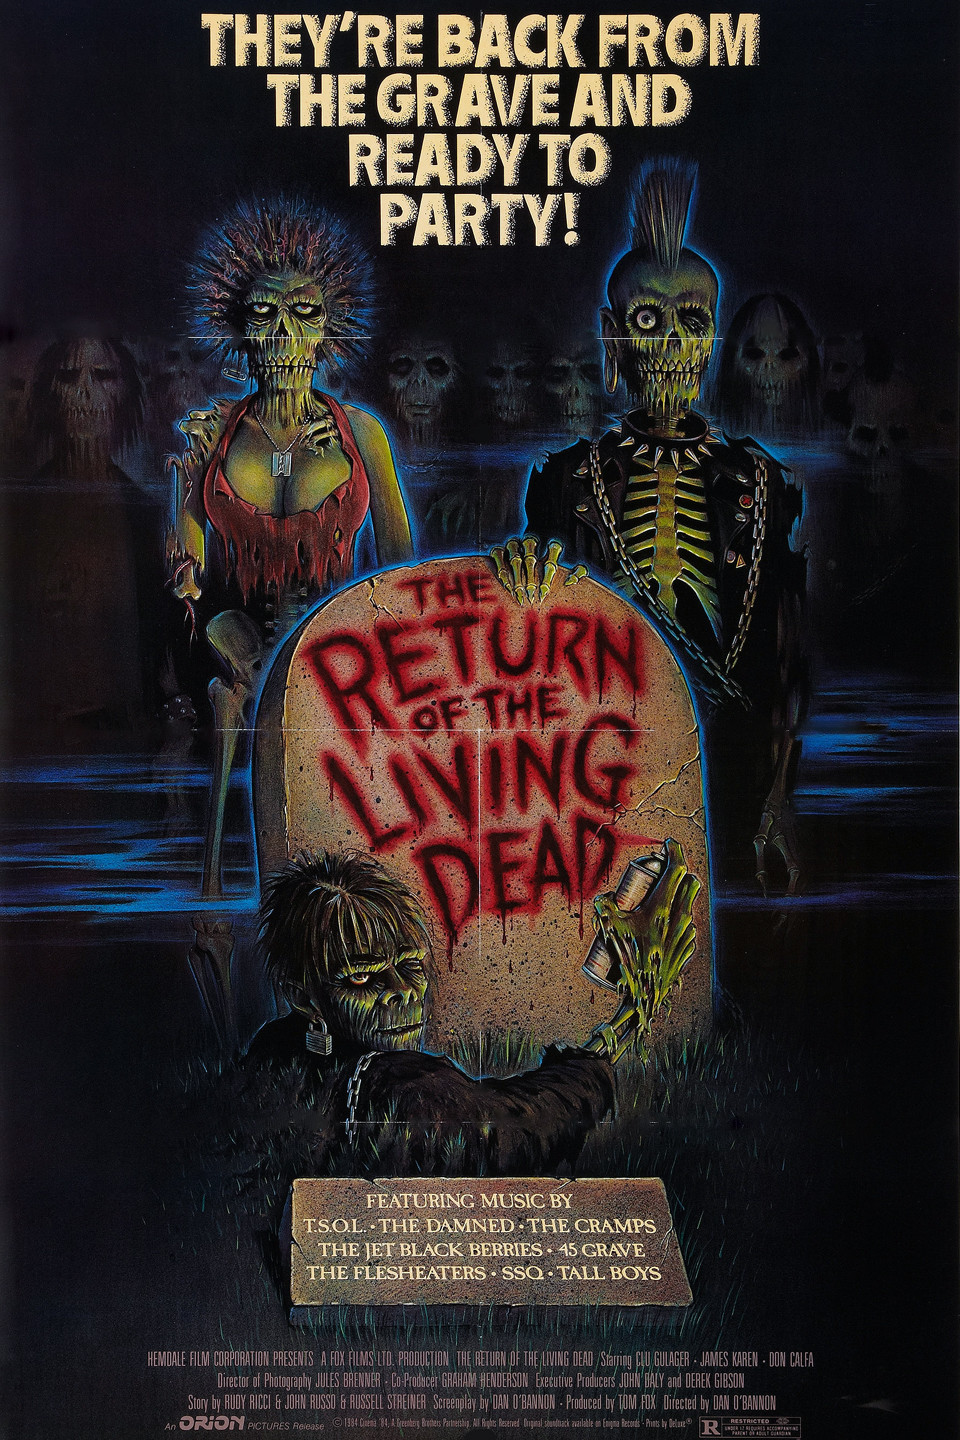 Scream factory return of the living dead on blu ray